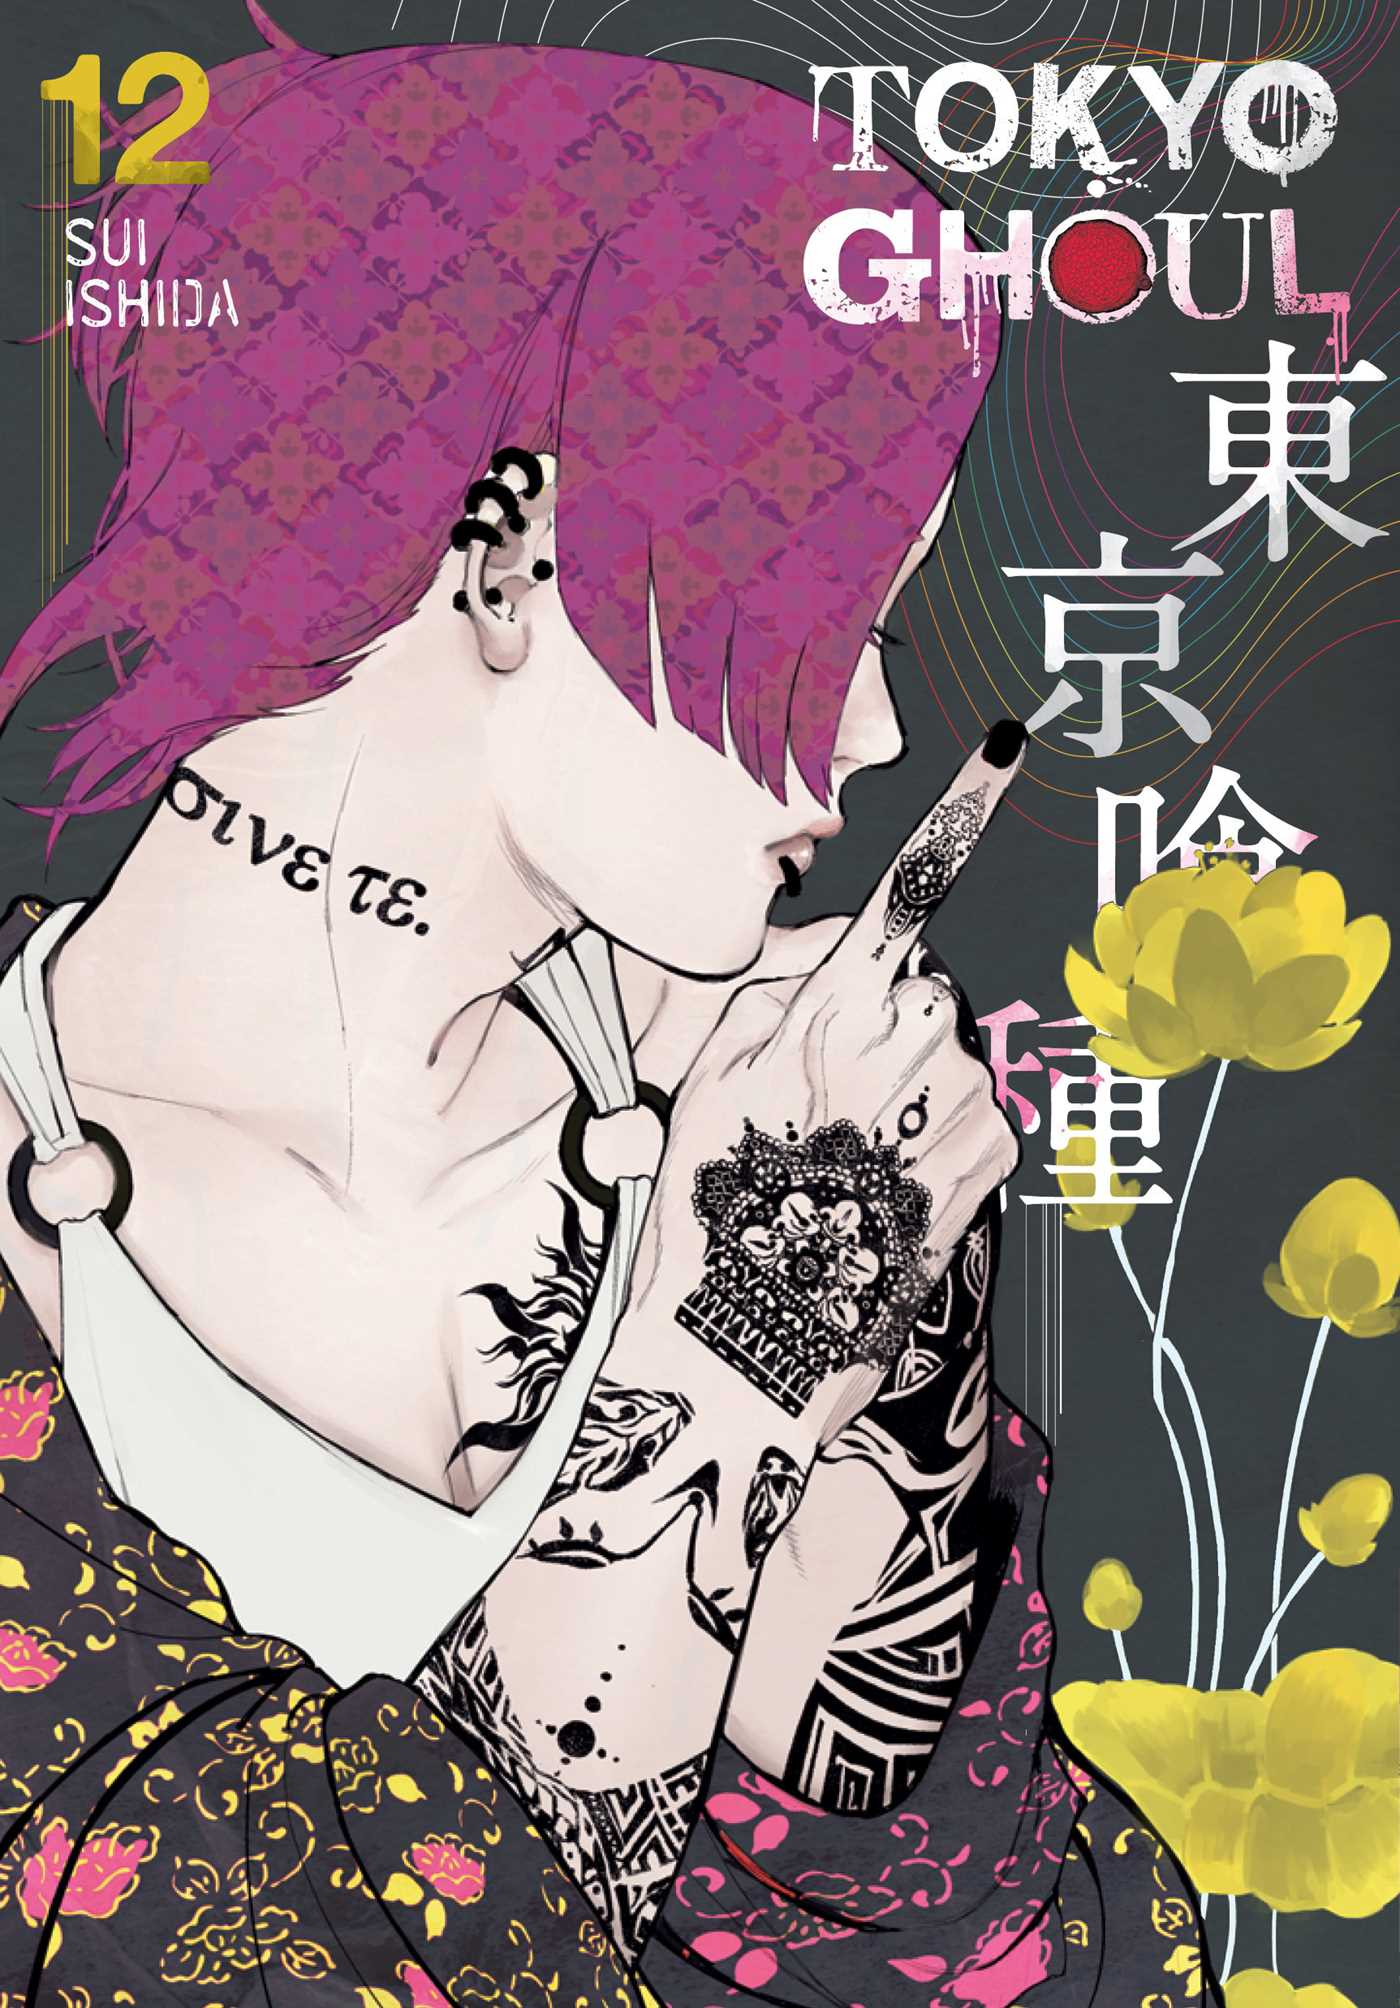 Tokyo Ghoul, Vol  12 | Book by Sui Ishida | Official